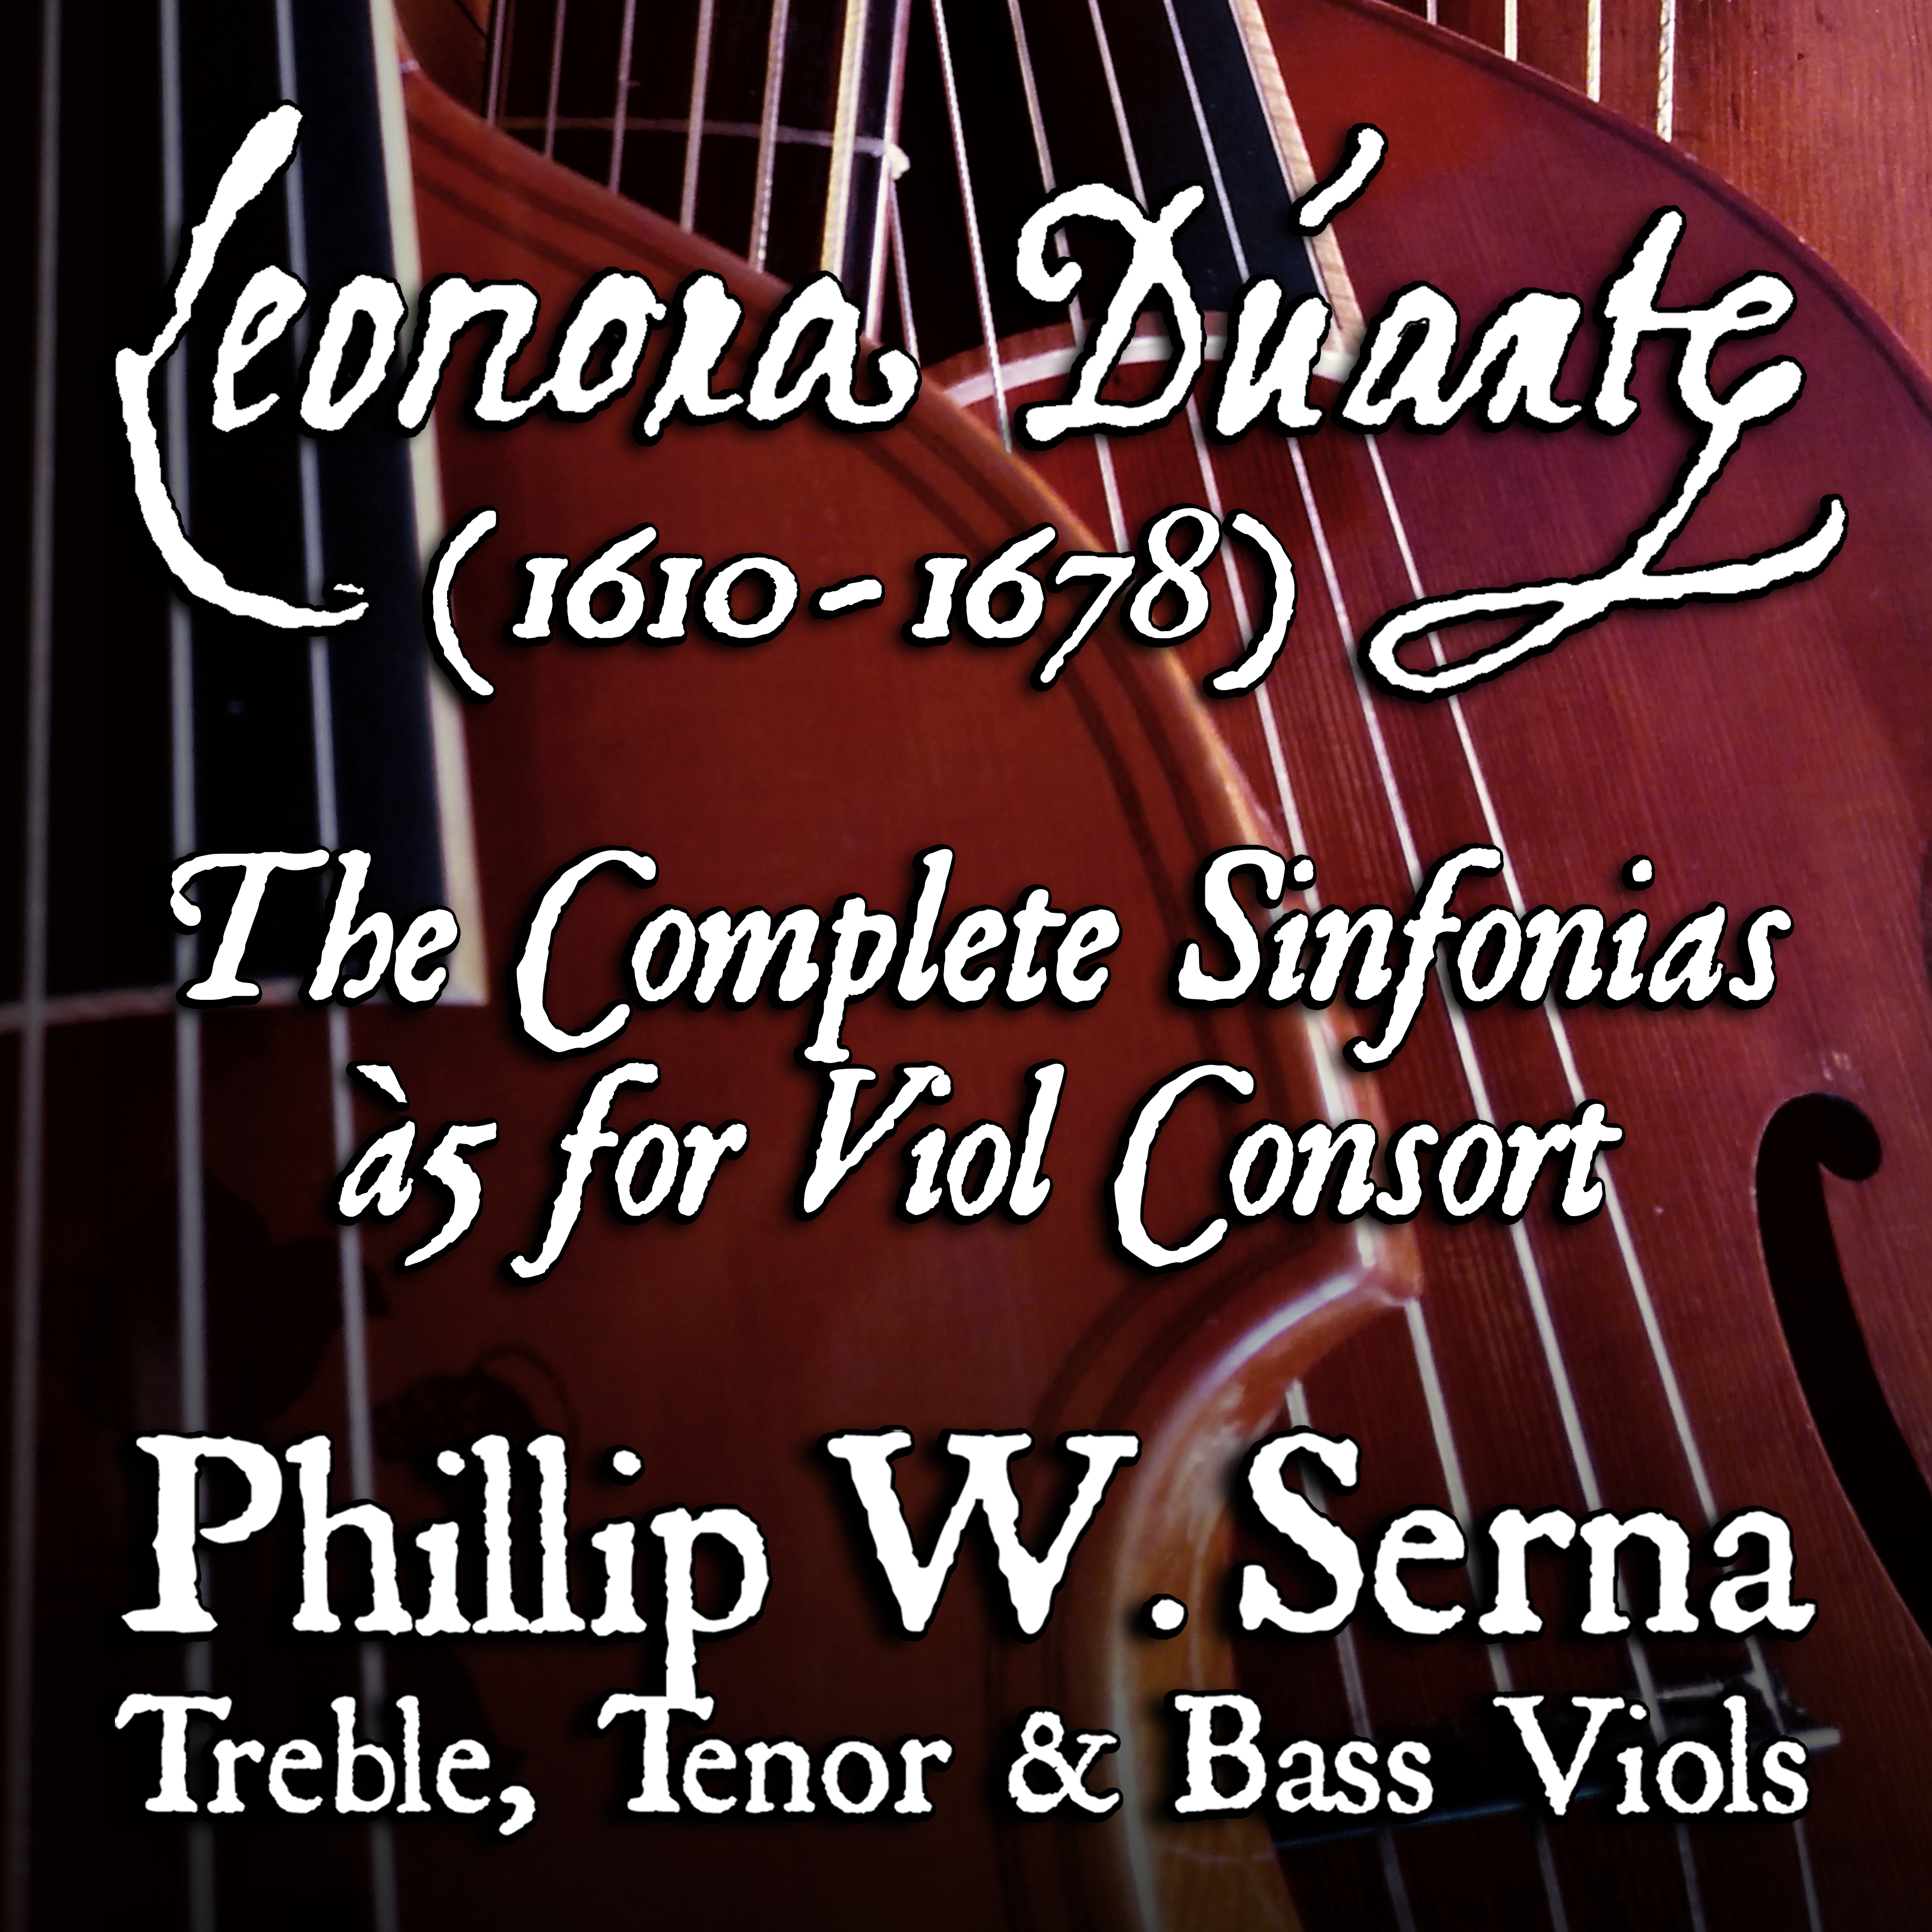 Purchase Leonora Duarte (1610-1678) - The Complete Sinfonias à5 for Viol Consort